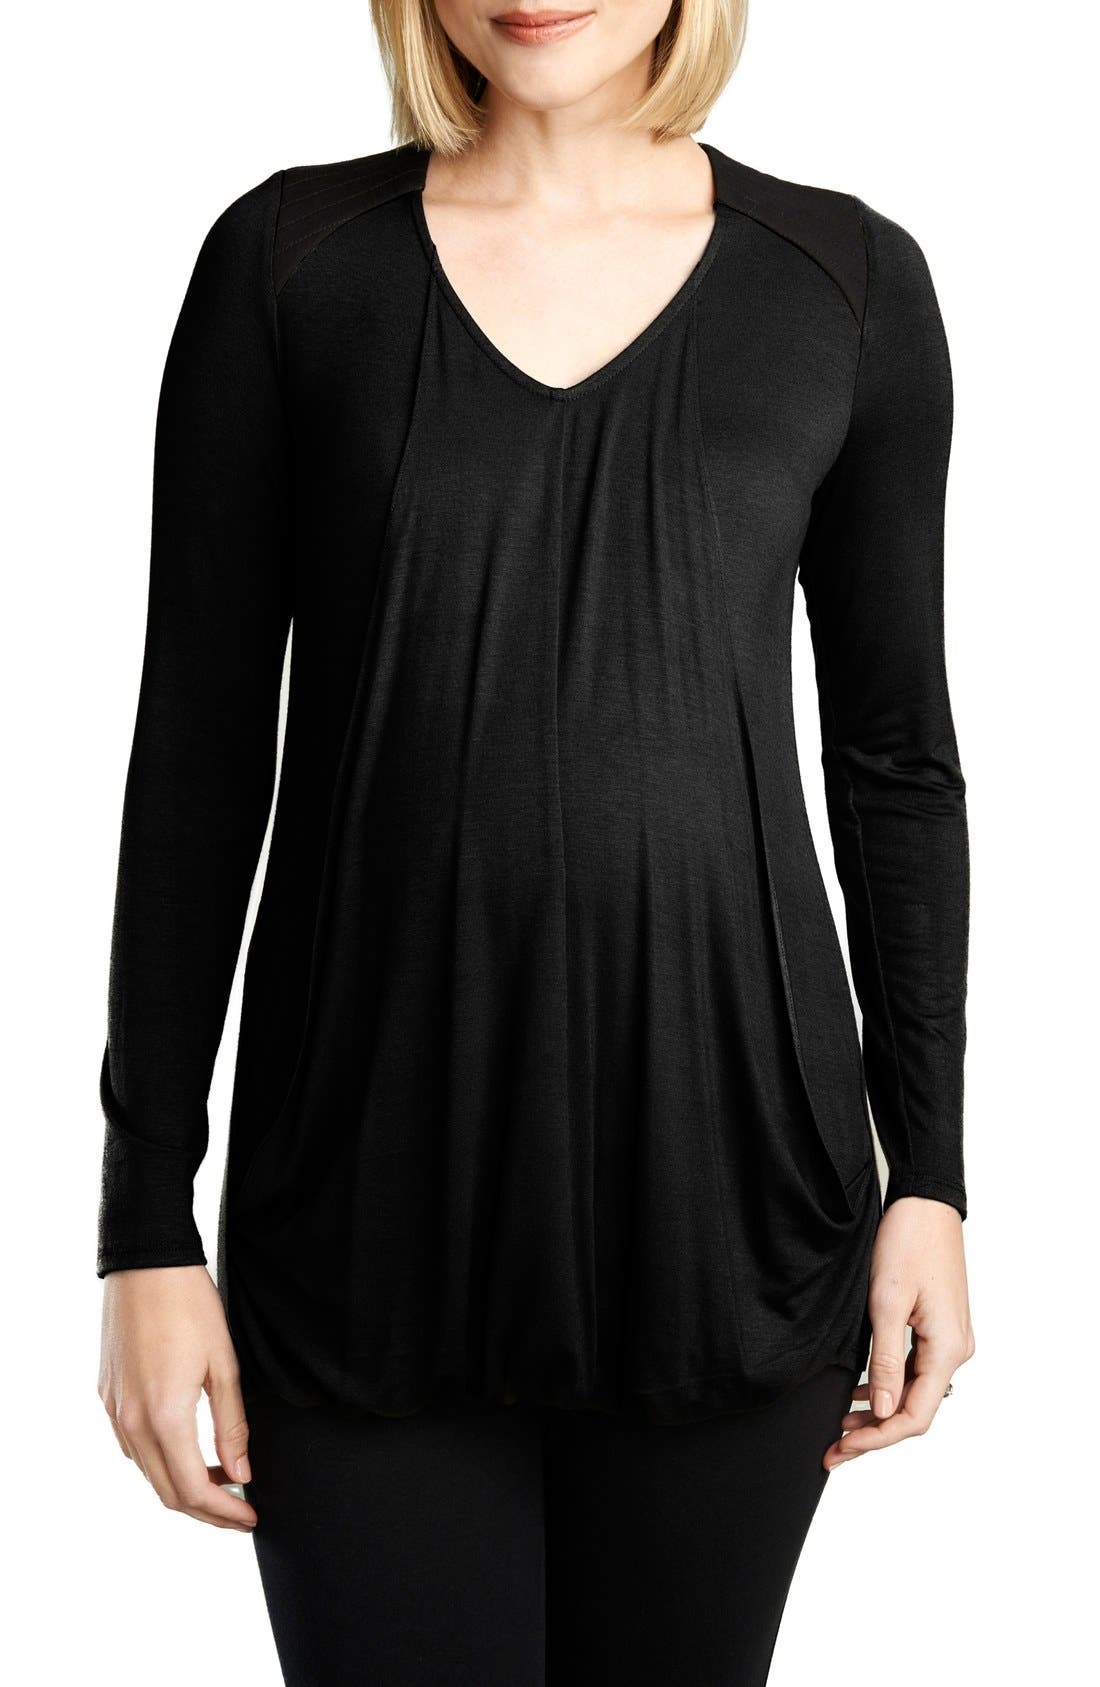 Quilted Nursing Top,                             Main thumbnail 1, color,                             BLACK/BLACK